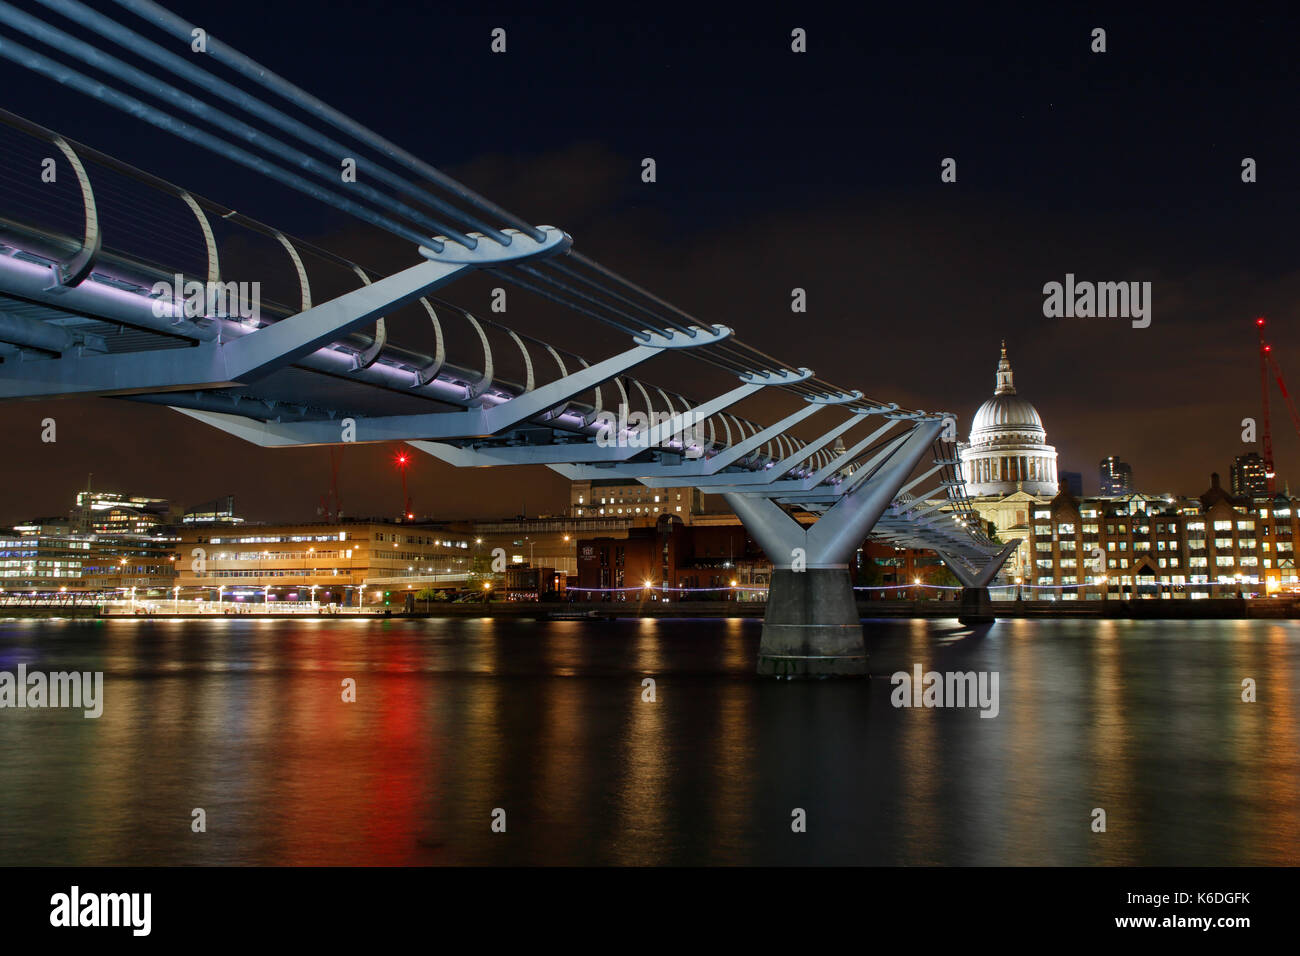 The Millennium Bridge at night with St Paul's Cathedral in the background. - Stock Image